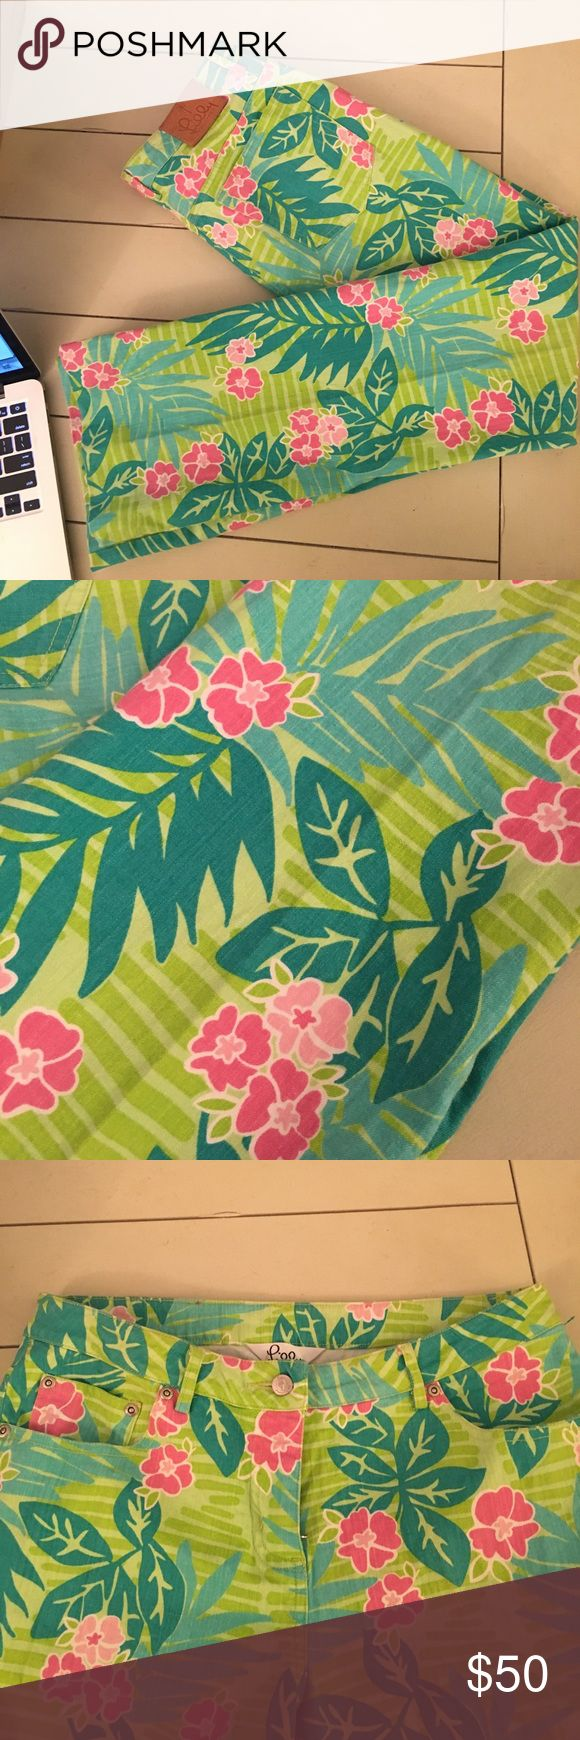 Lilly Pulitzer like new floral print pants Like new Lilly Pulitzer pants. Like Green background  with green and aqua color leaves and pink flowers. Lilly Pulitzer Pants